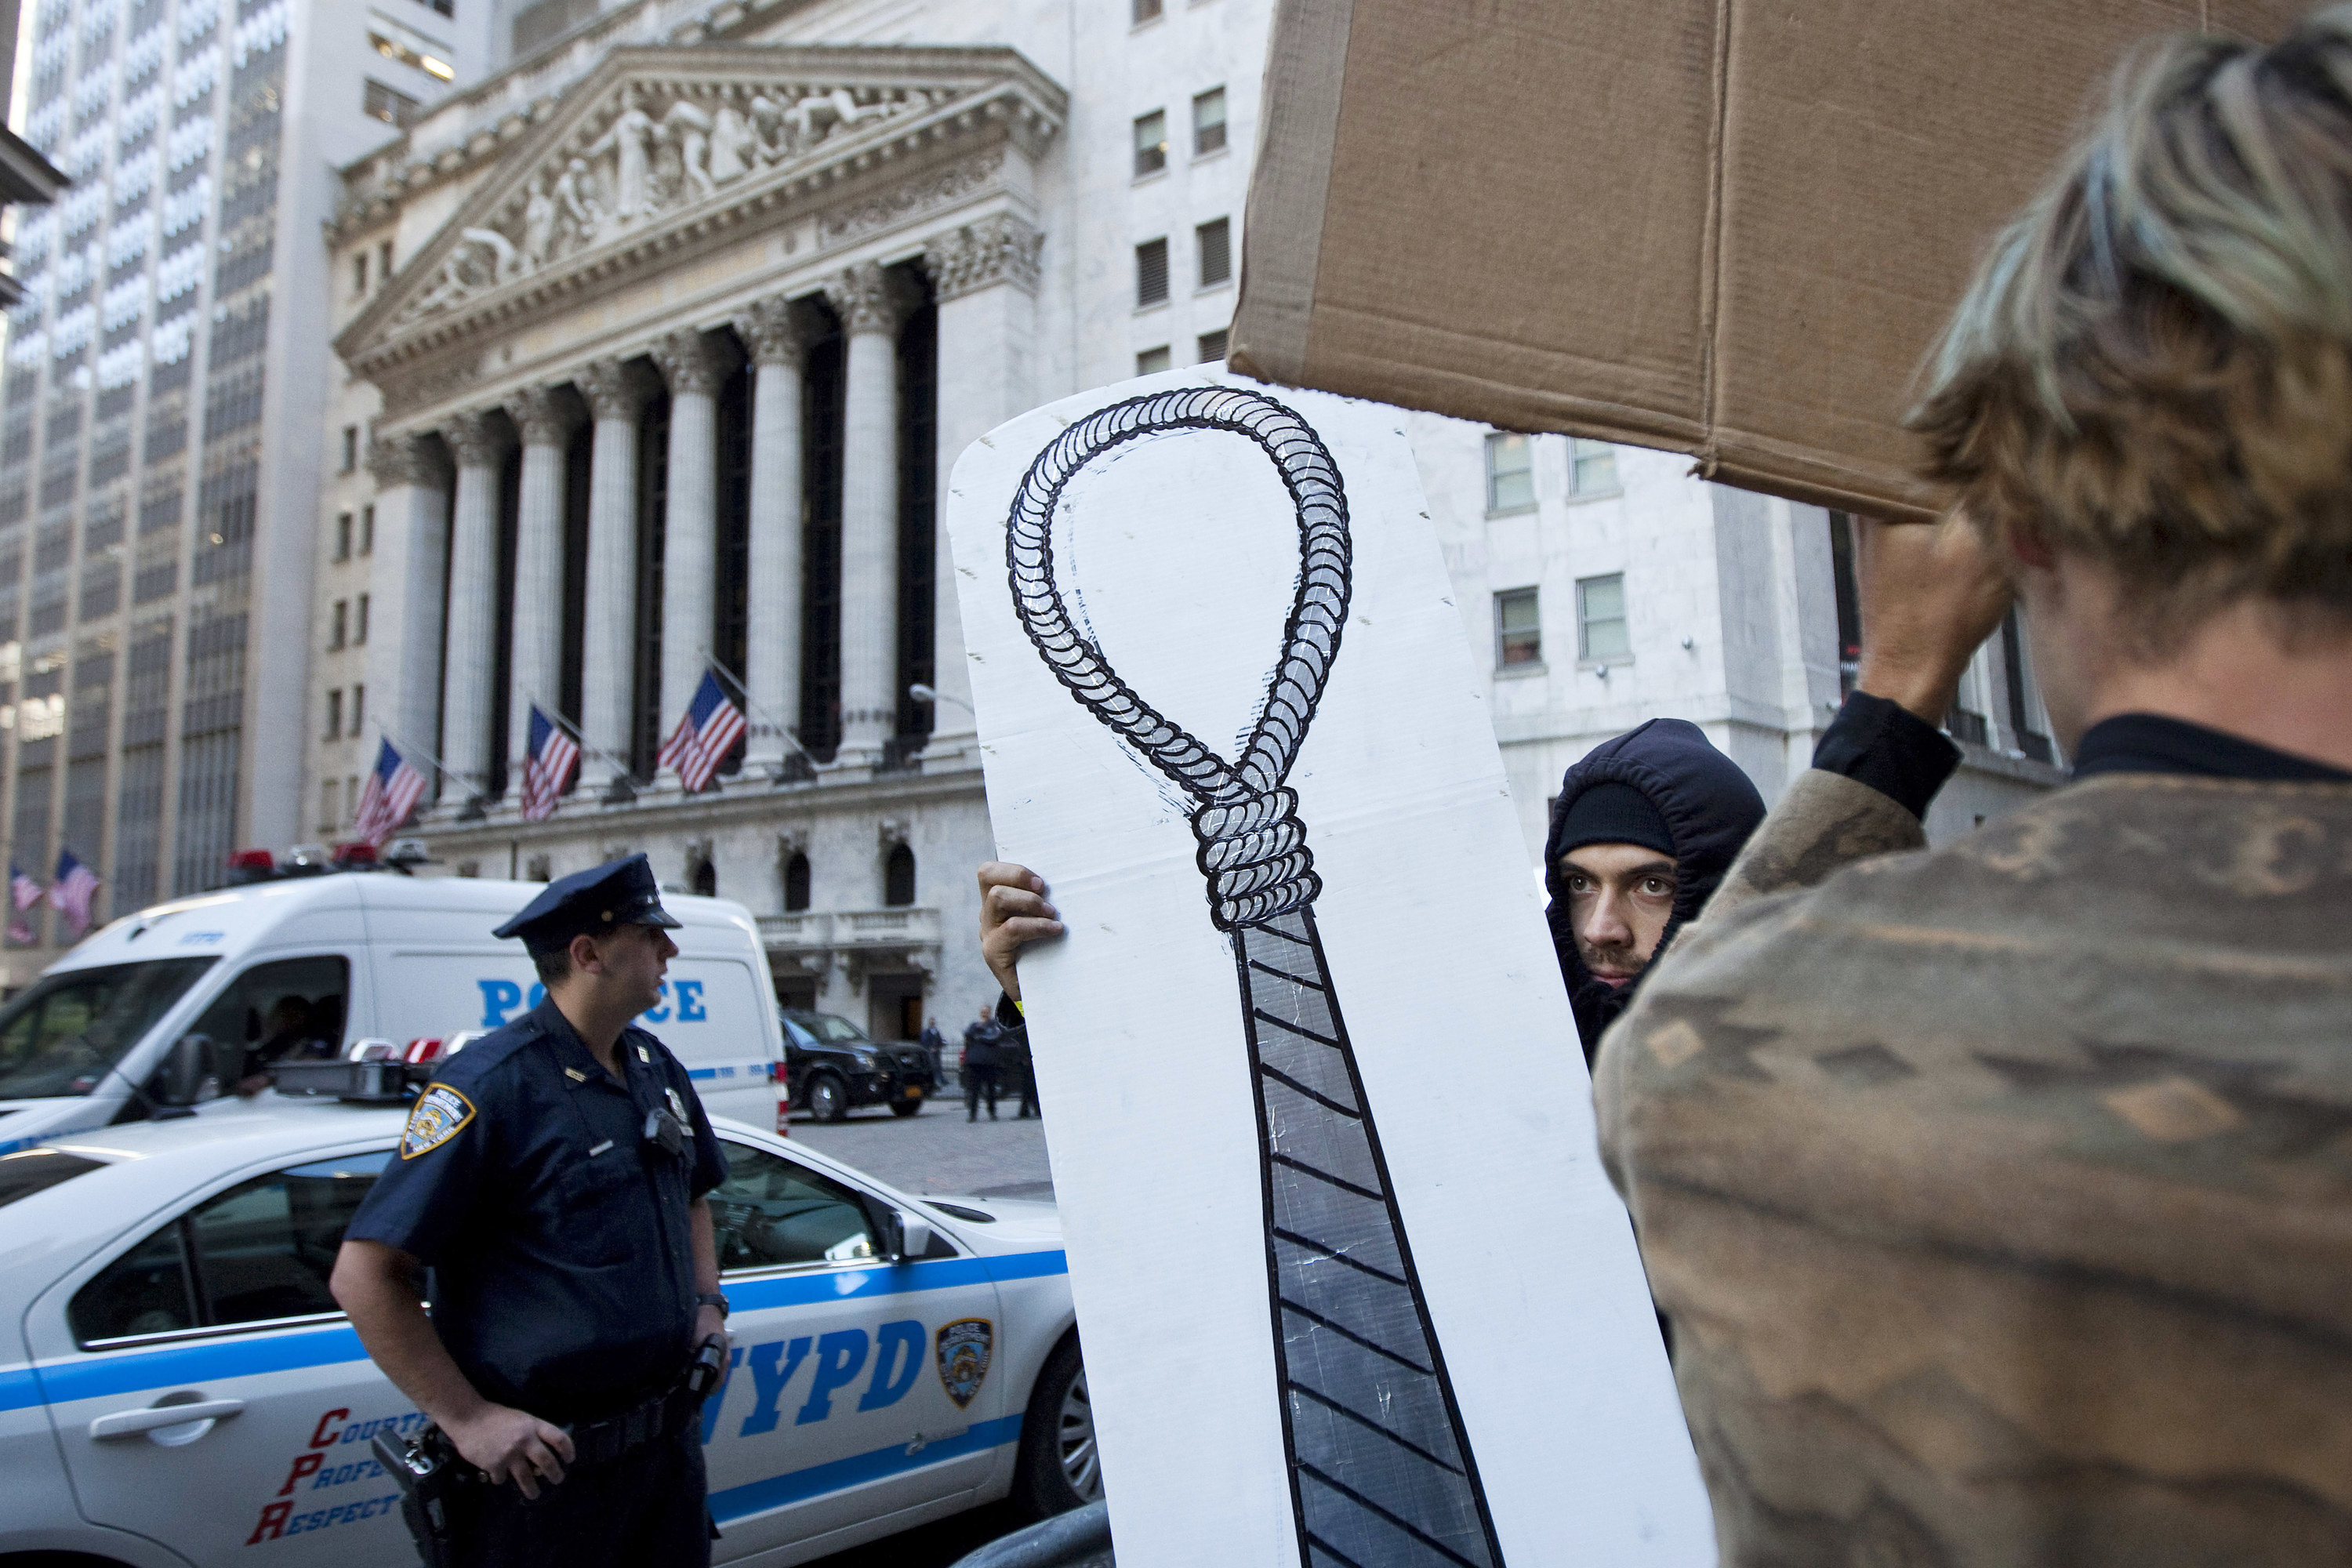 The sign is a drawing of a noose turned into a necktie